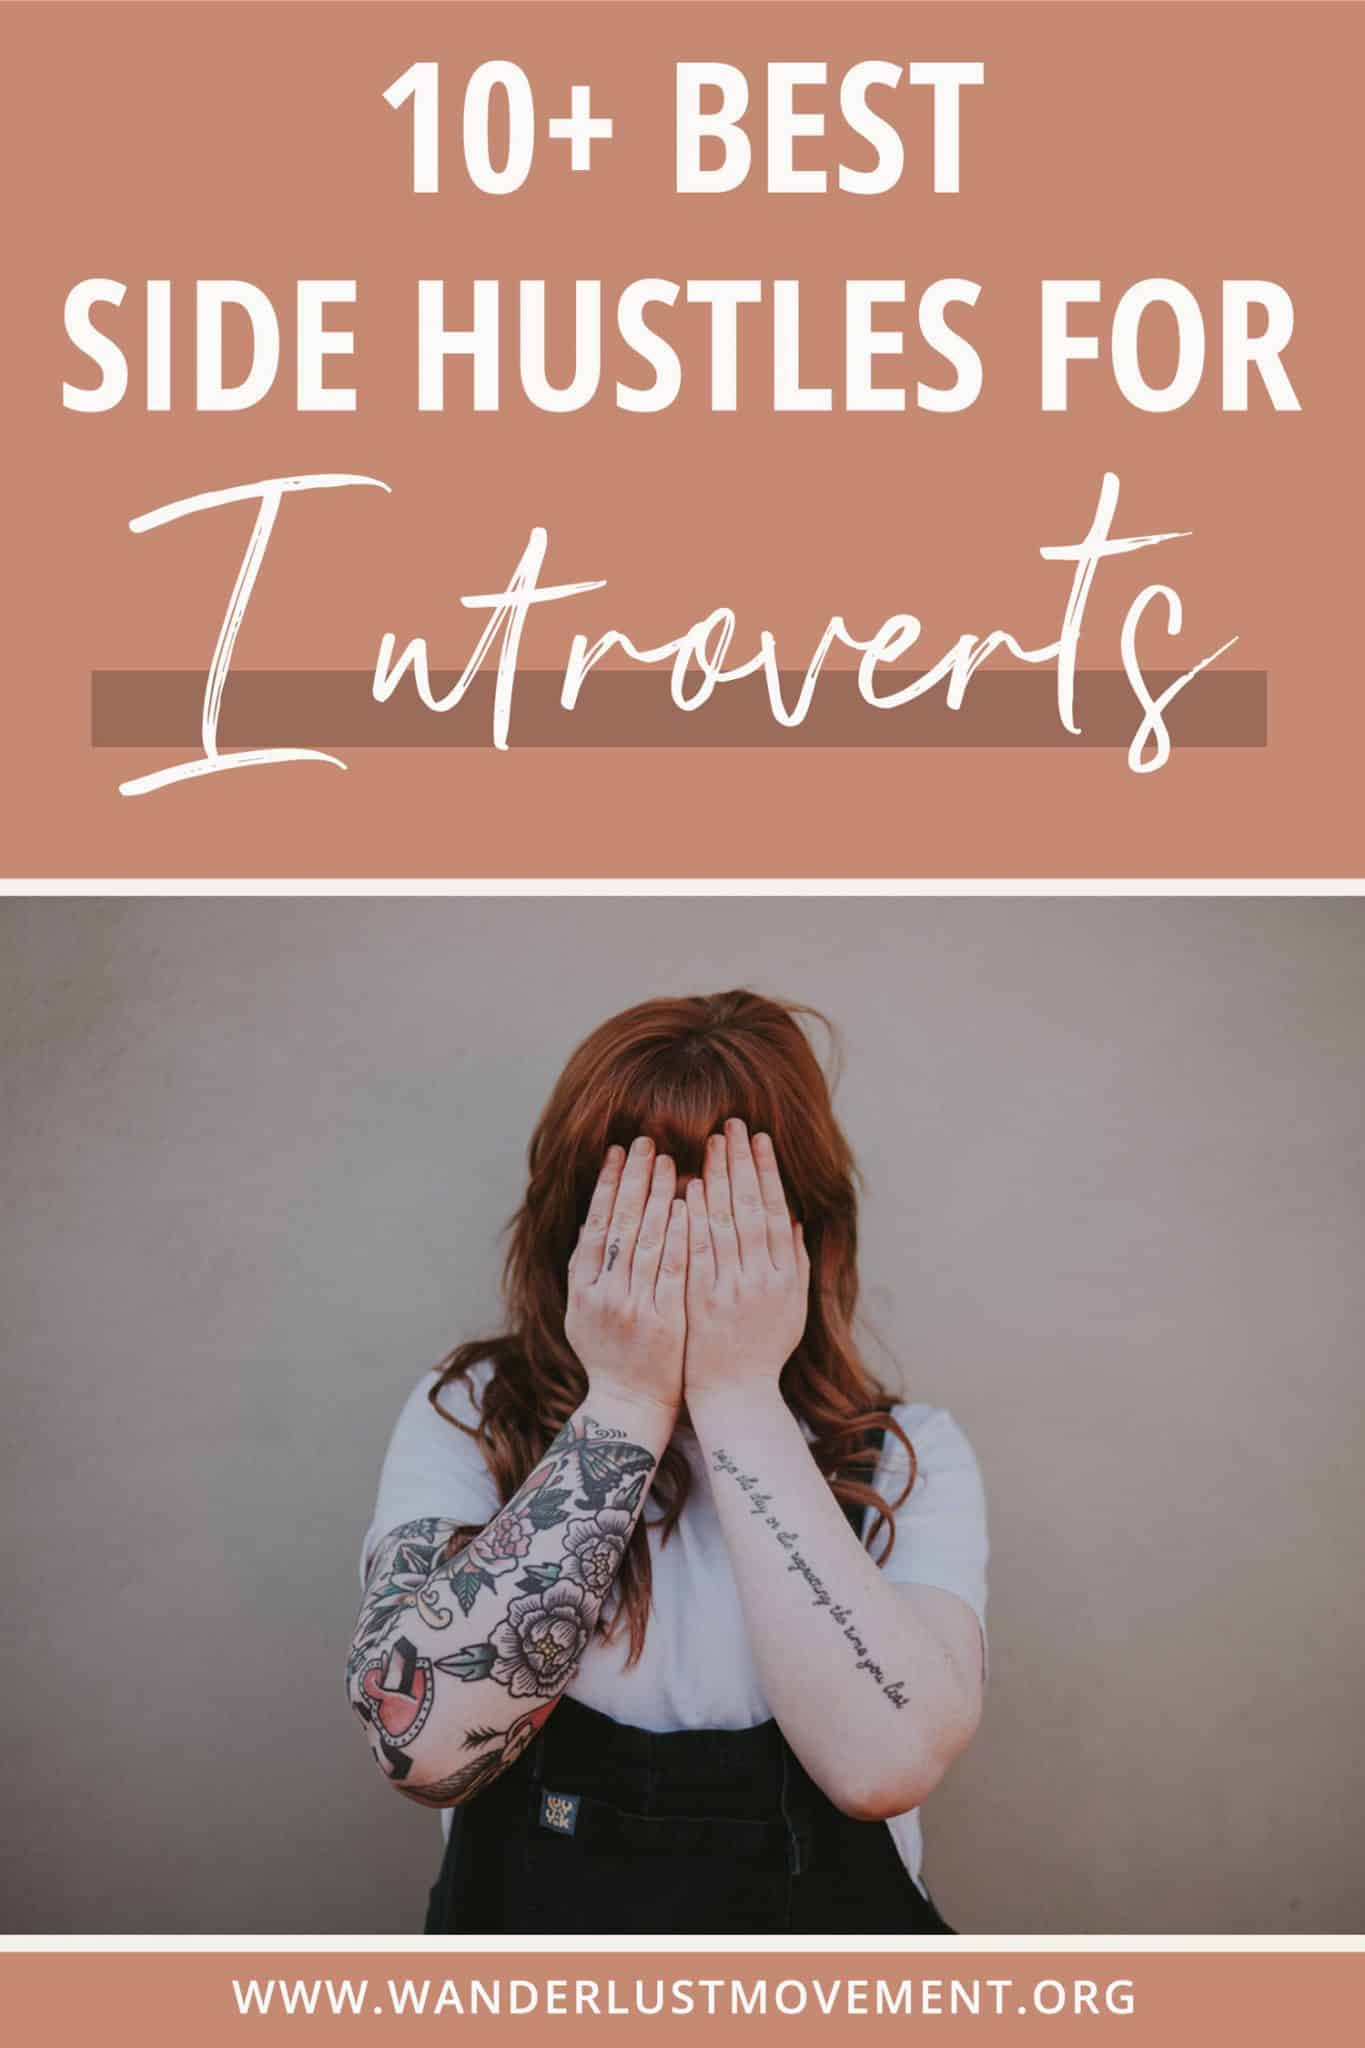 10+ of the Best Side Hustles for Introverts